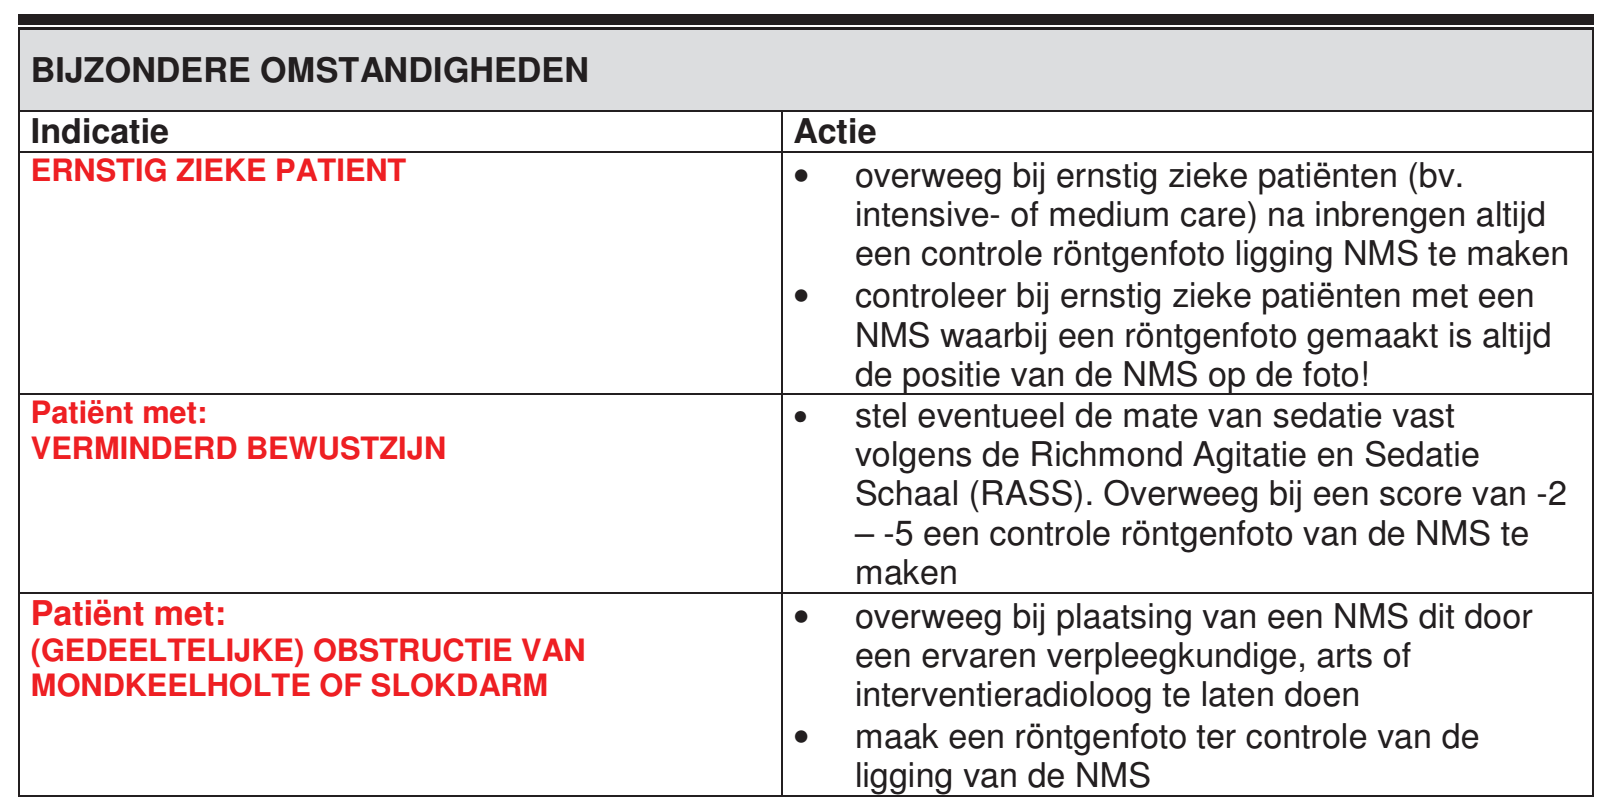 Opleiding: Risicovolle en